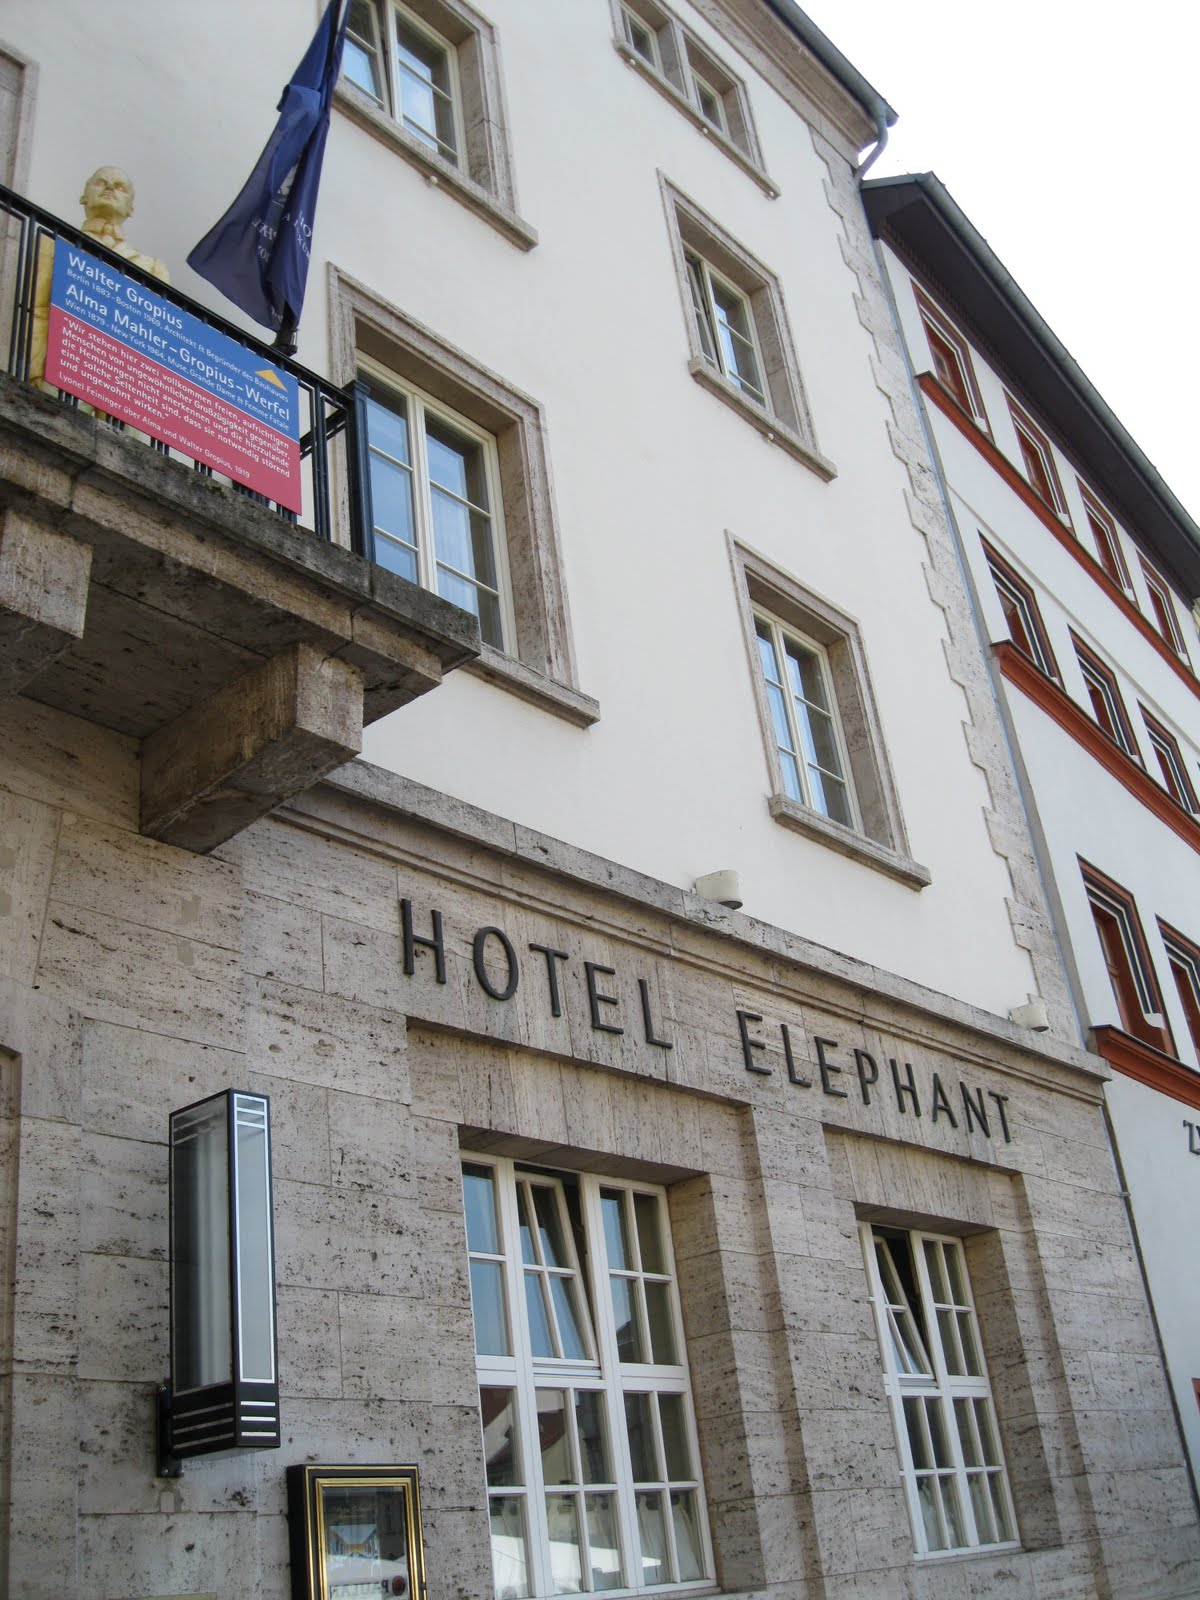 Germany trip block iii adventure 7 weimar hotel elephant for Design hotel elephant